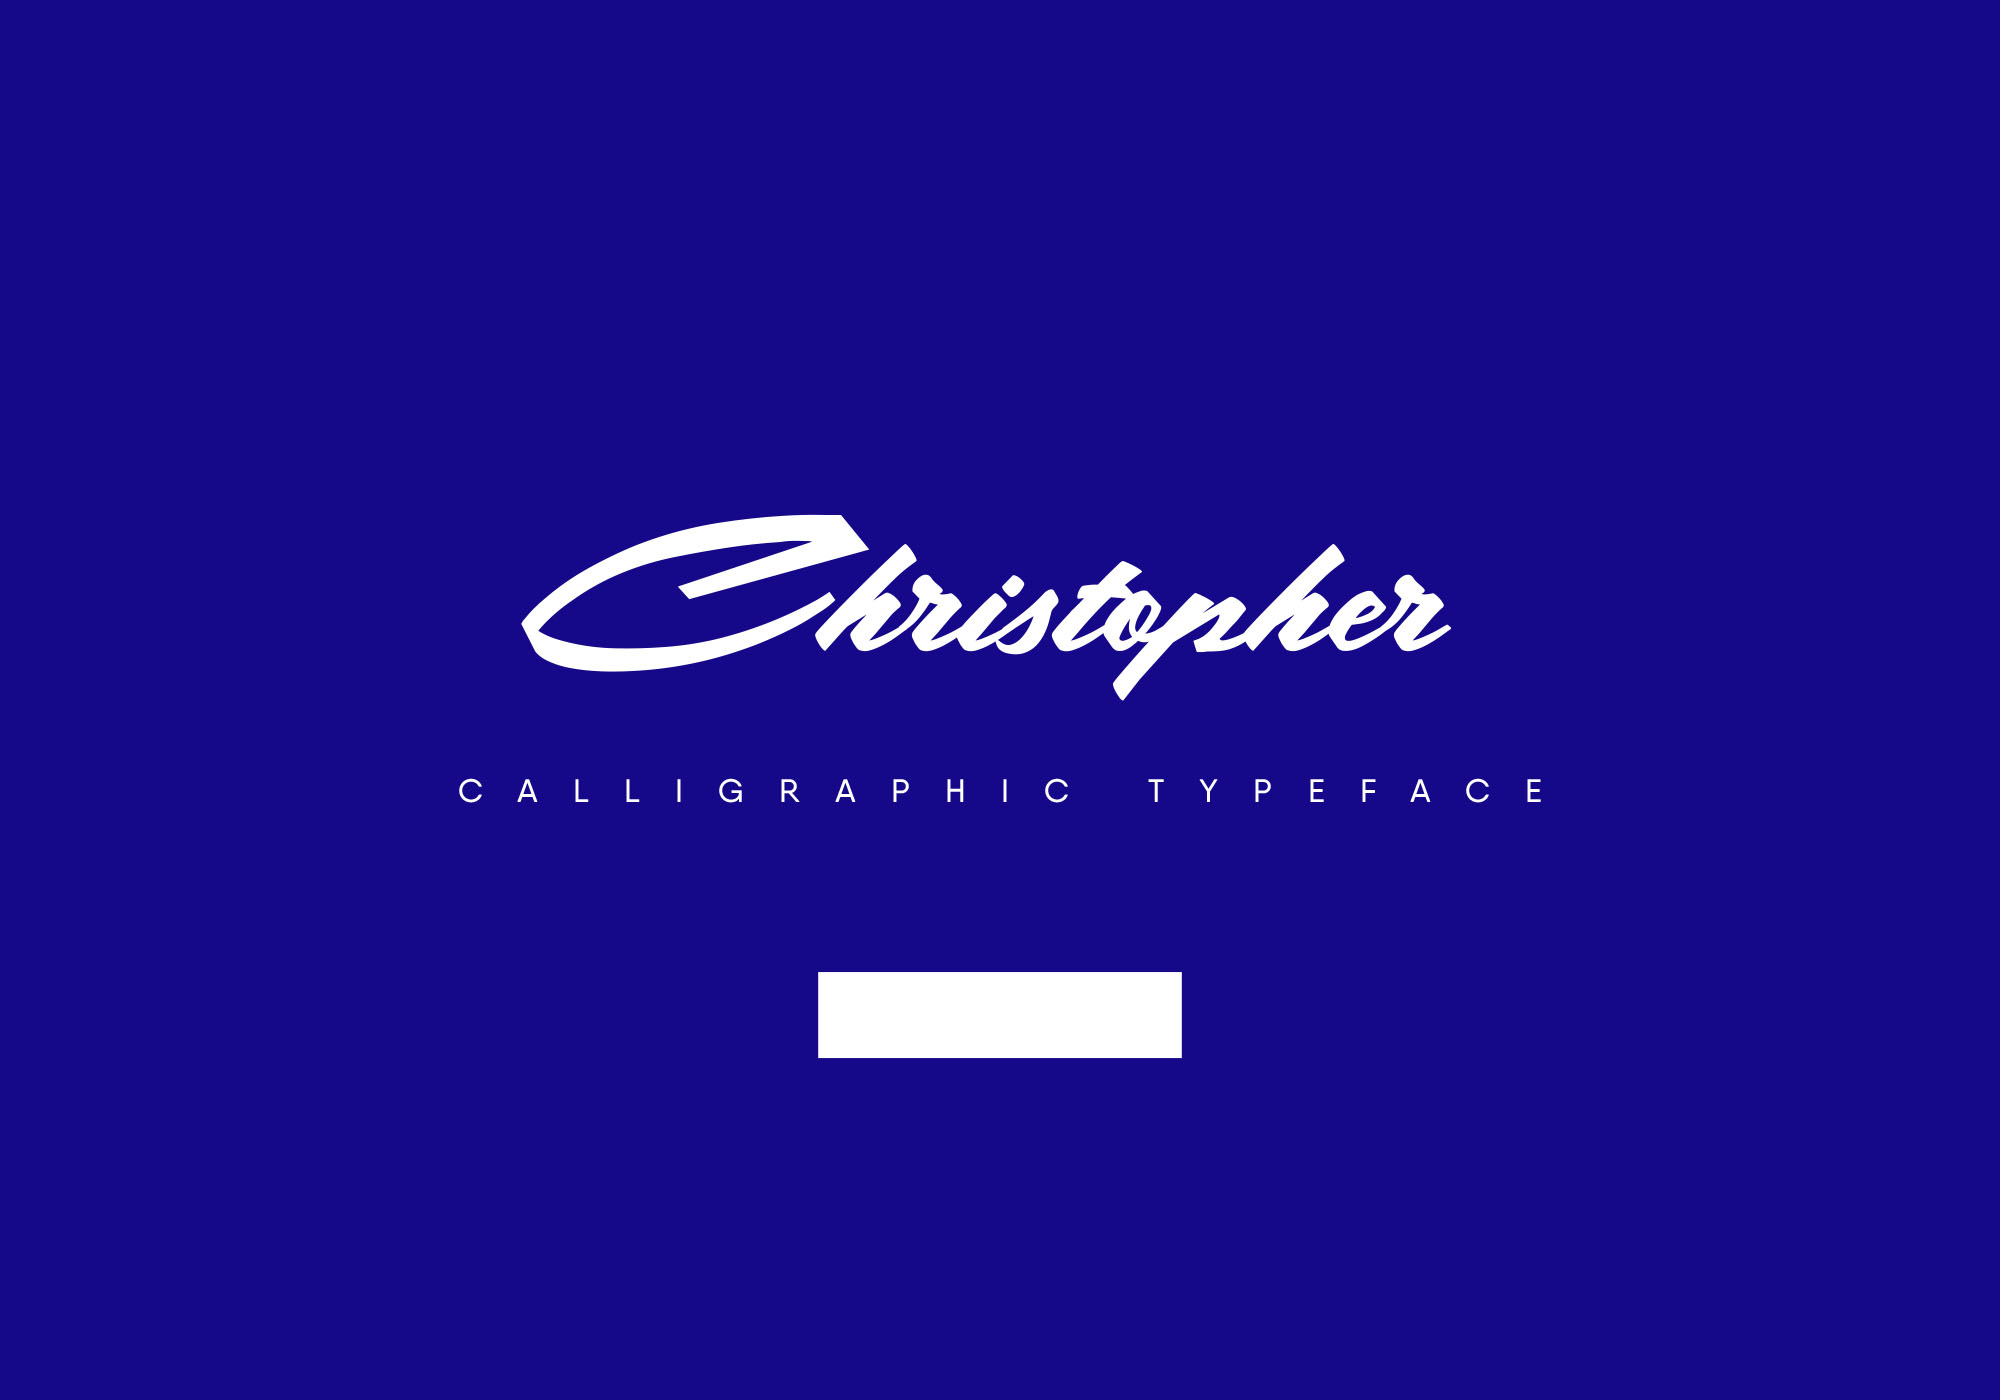 Christopher-Typeface-1-1